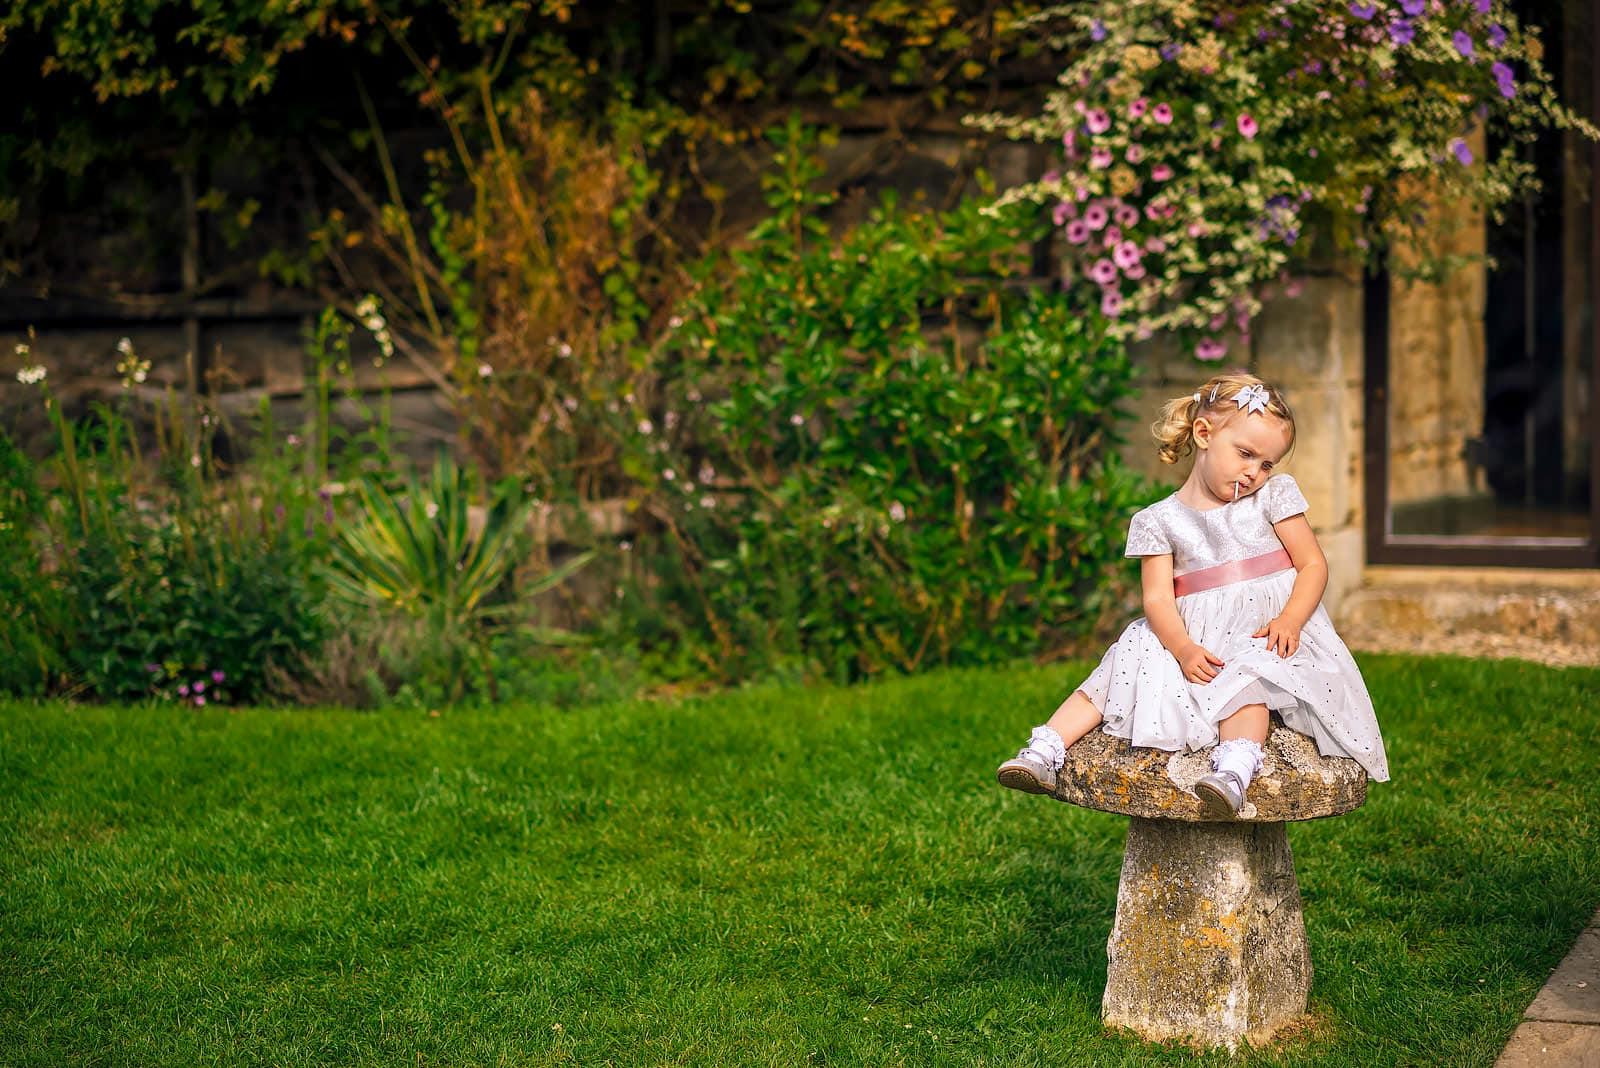 Flower girl enjoying the wedding